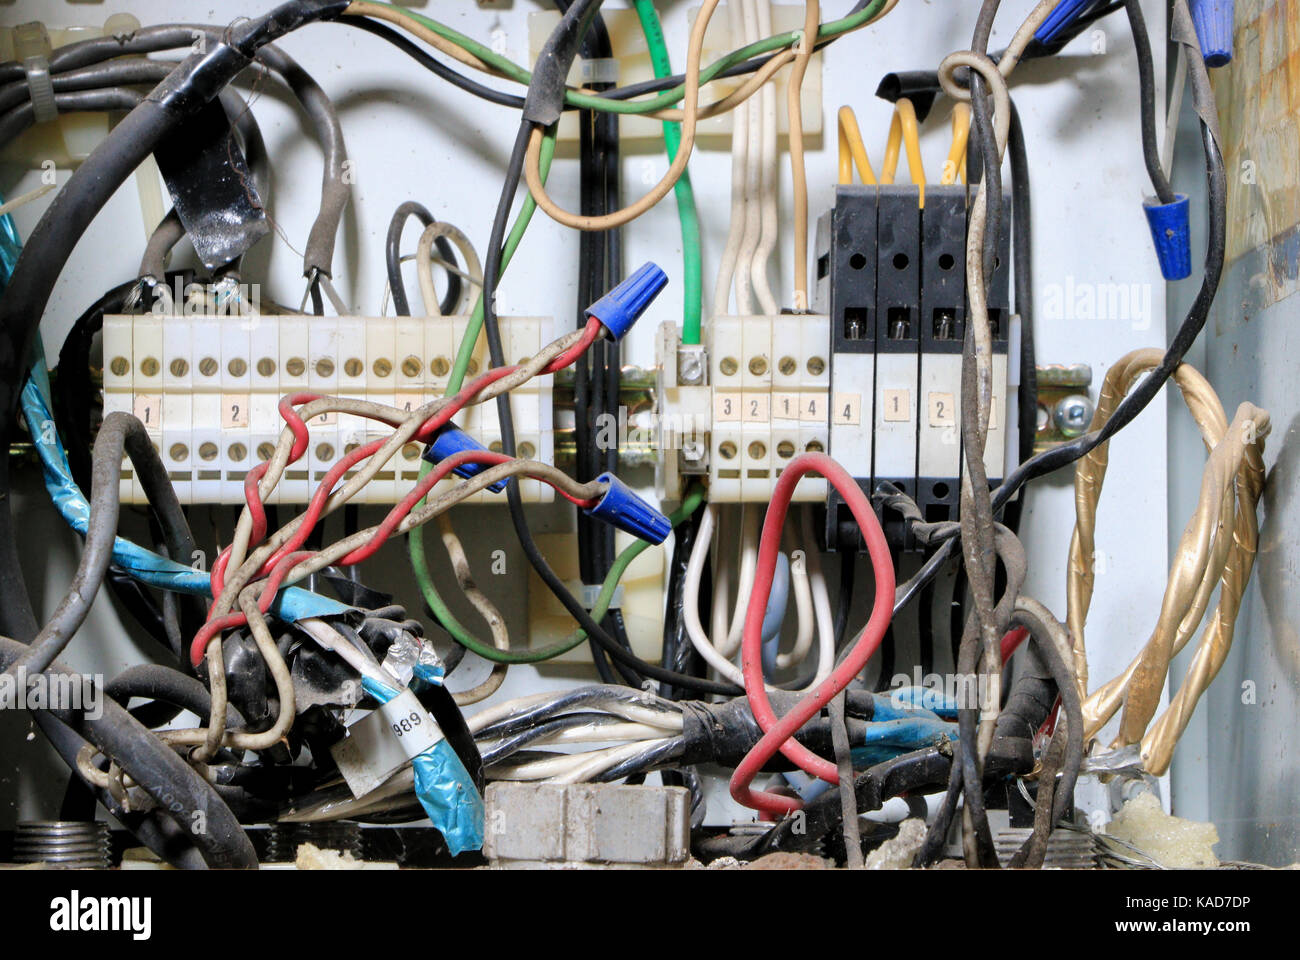 hight resolution of telephone or data junction box wiring in e b eddy paper mill ottawa canada closed in 2007